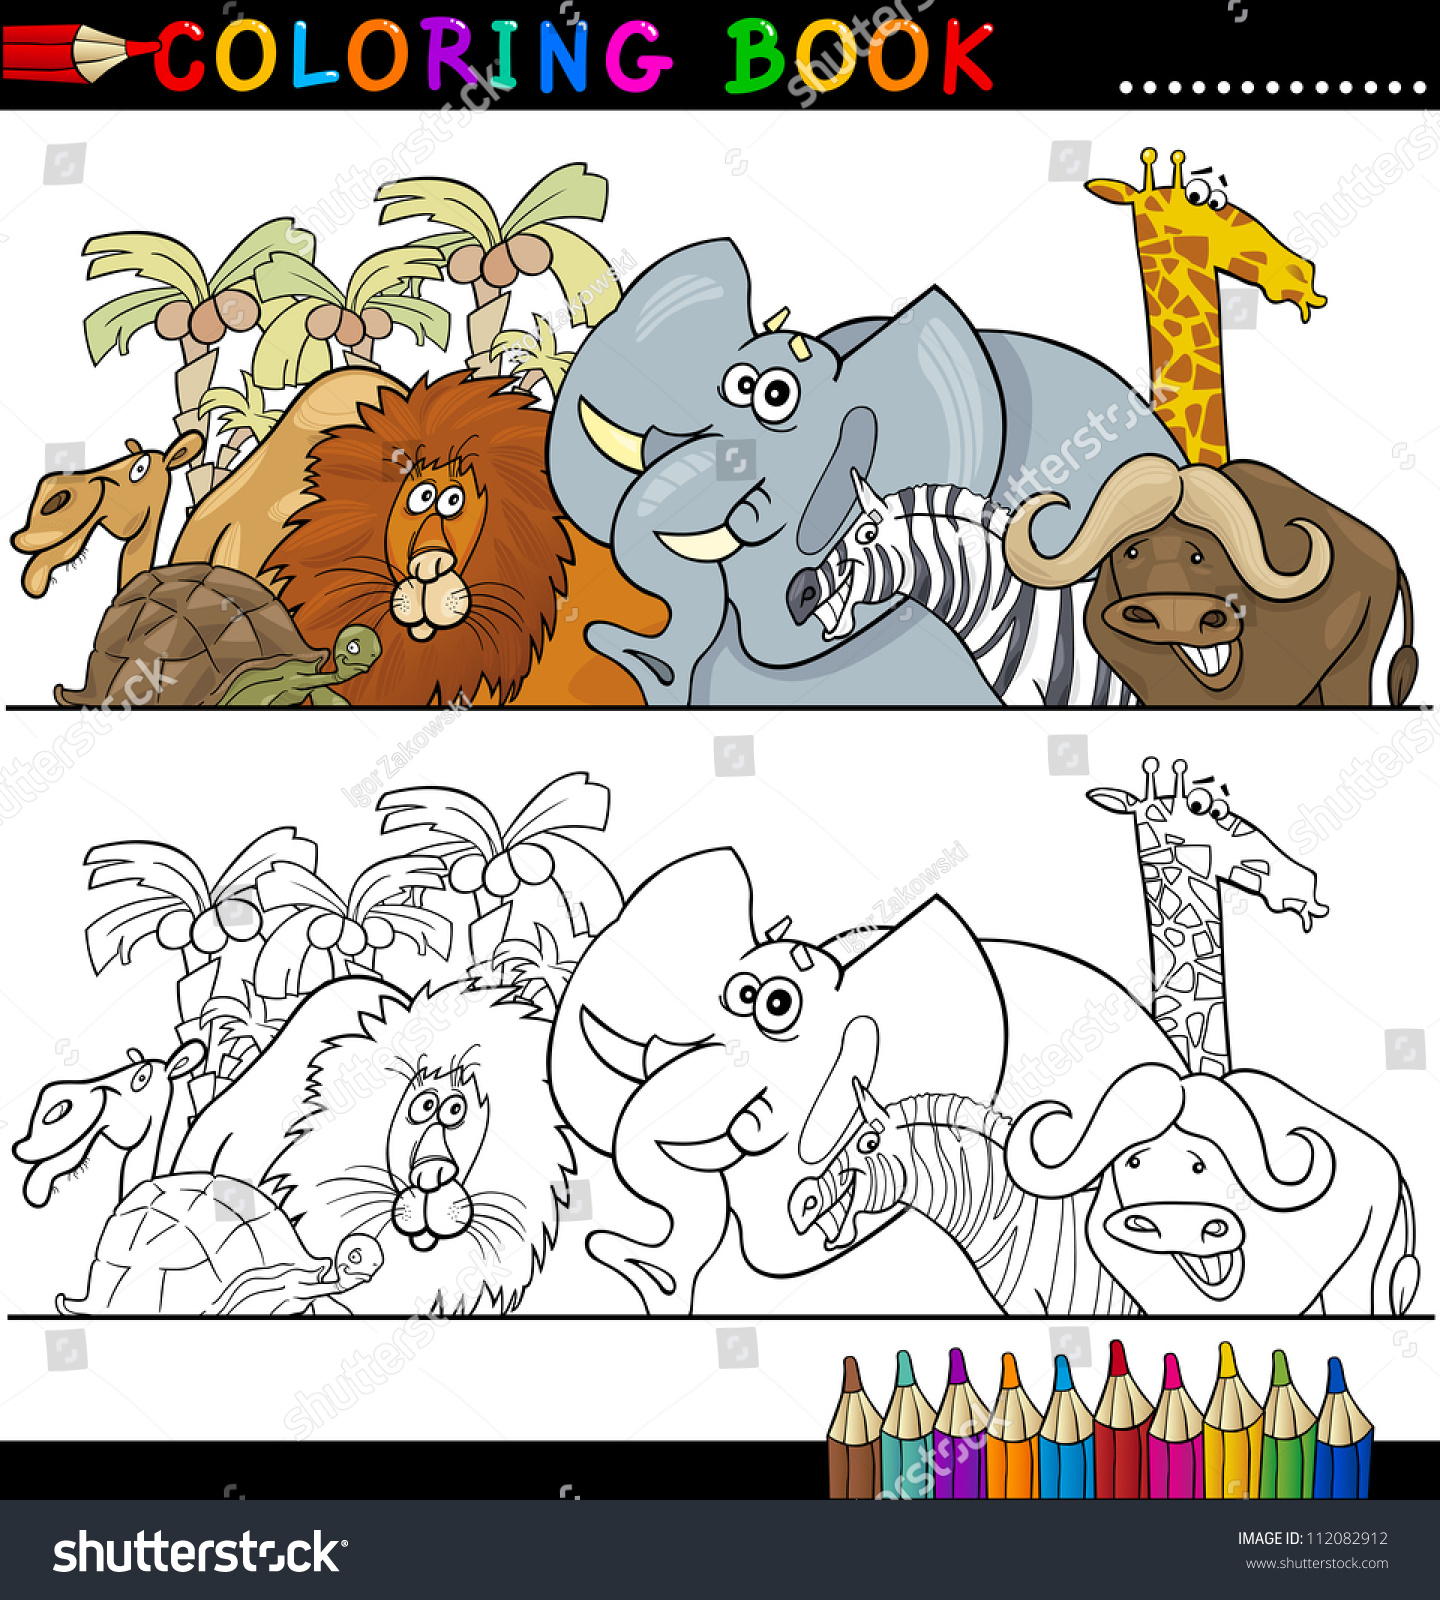 Coloring Book Or Page Cartoon Illustration Of Funny Wild